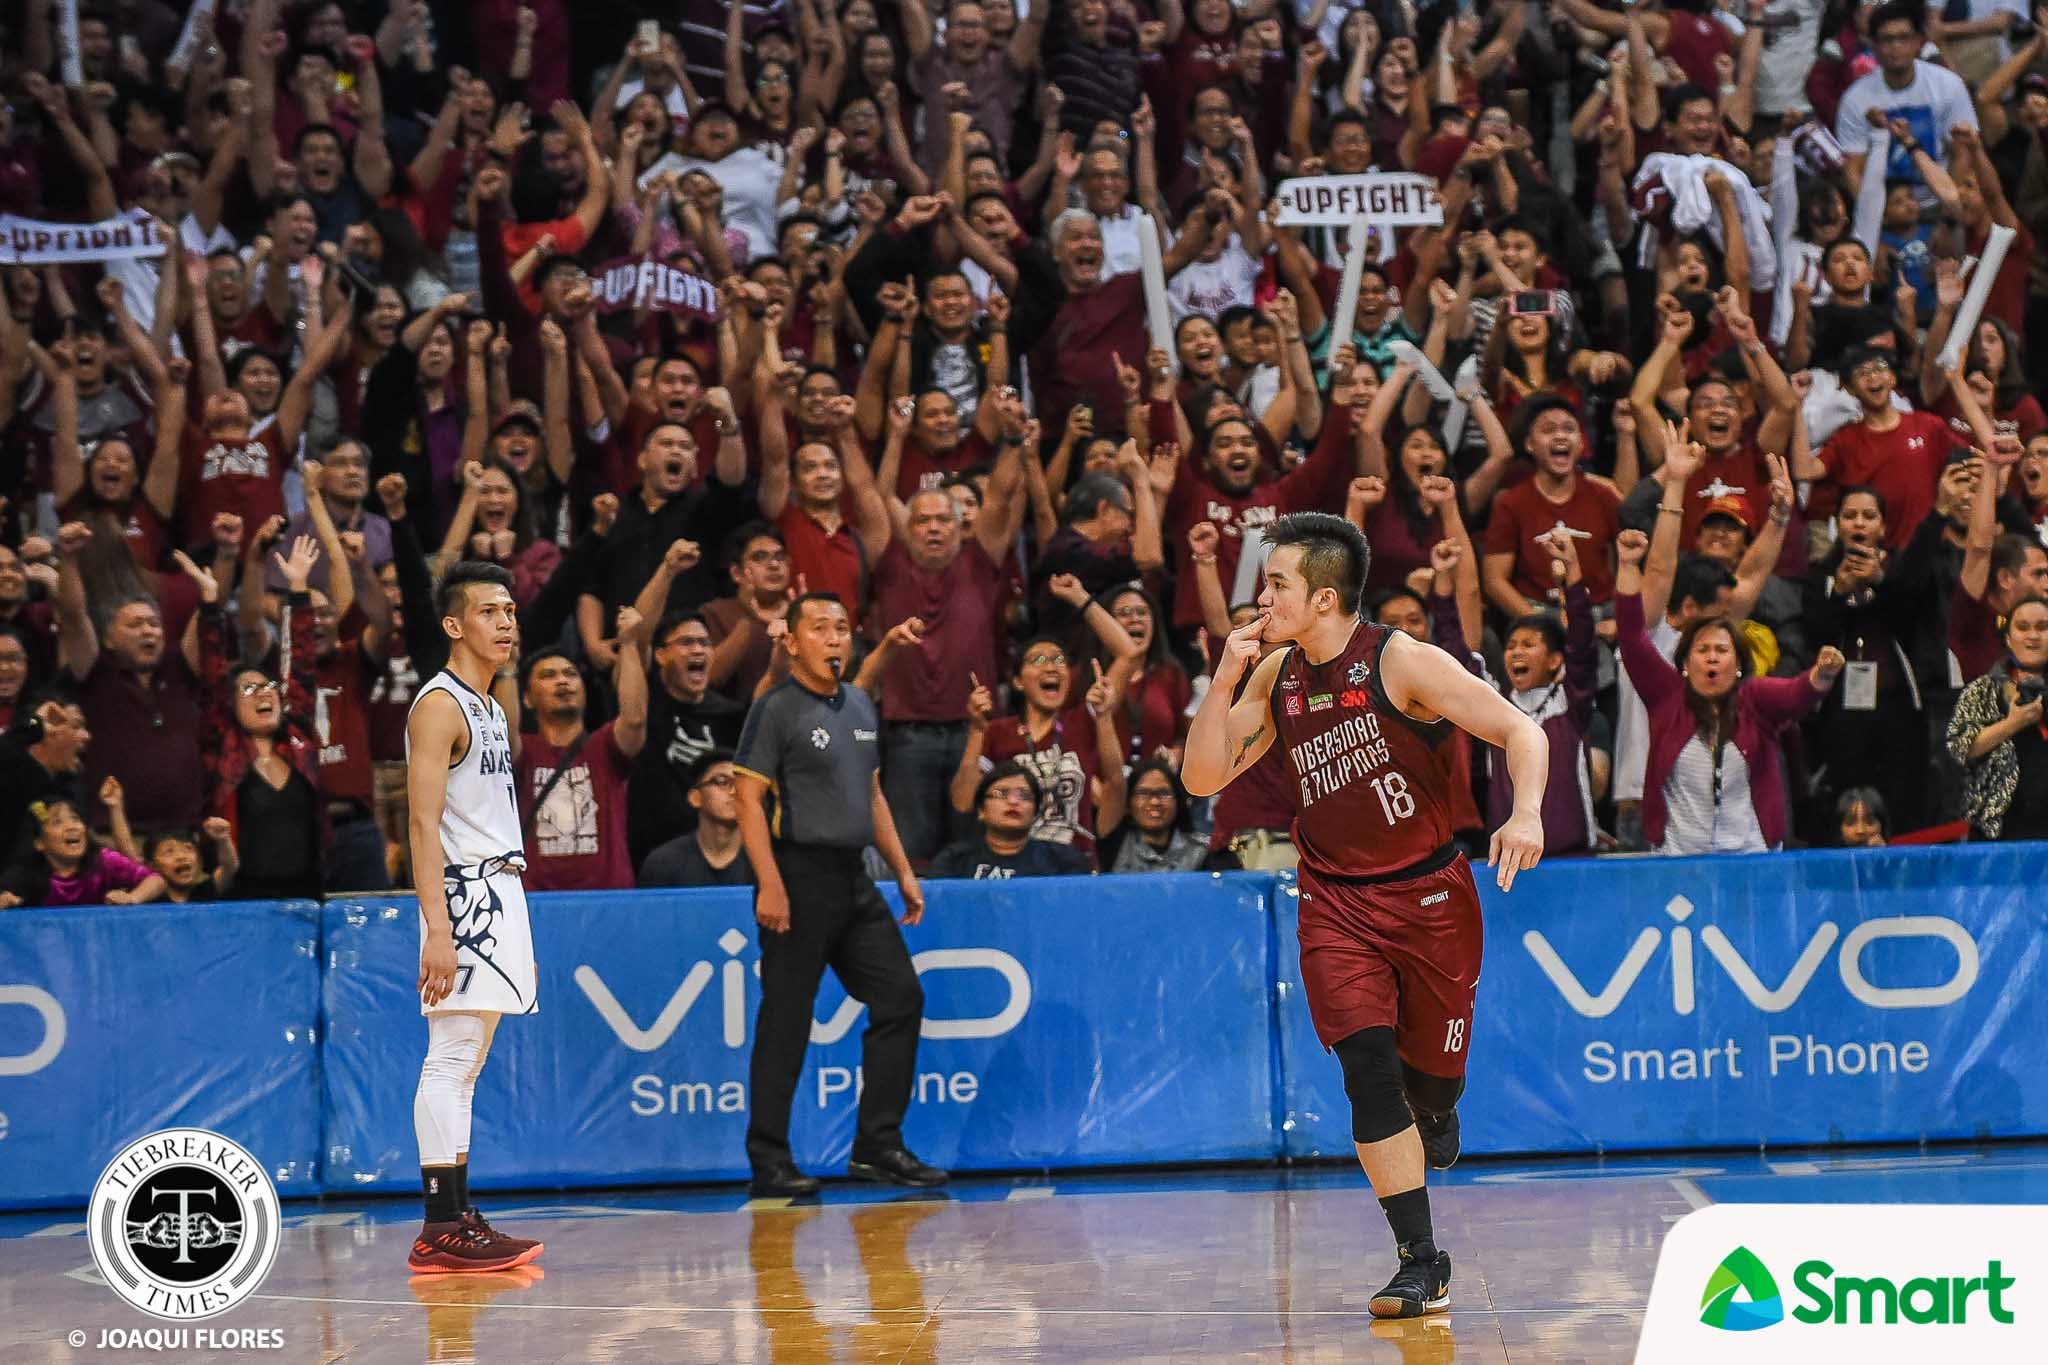 Tiebreaker Times 'Atin 'to' at 'Kami naman': The lasting legacy of Paul Desiderio and Sisi Rondina Basketball News UAAP UP UST Volleyball  UST Women's Volleyball UP Men's Basketball UAAP Season 81 Women's Volleyball UAAP Season 81 Men's Basketball UAAP Season 81 Paul Desiderio Cherry Rondina